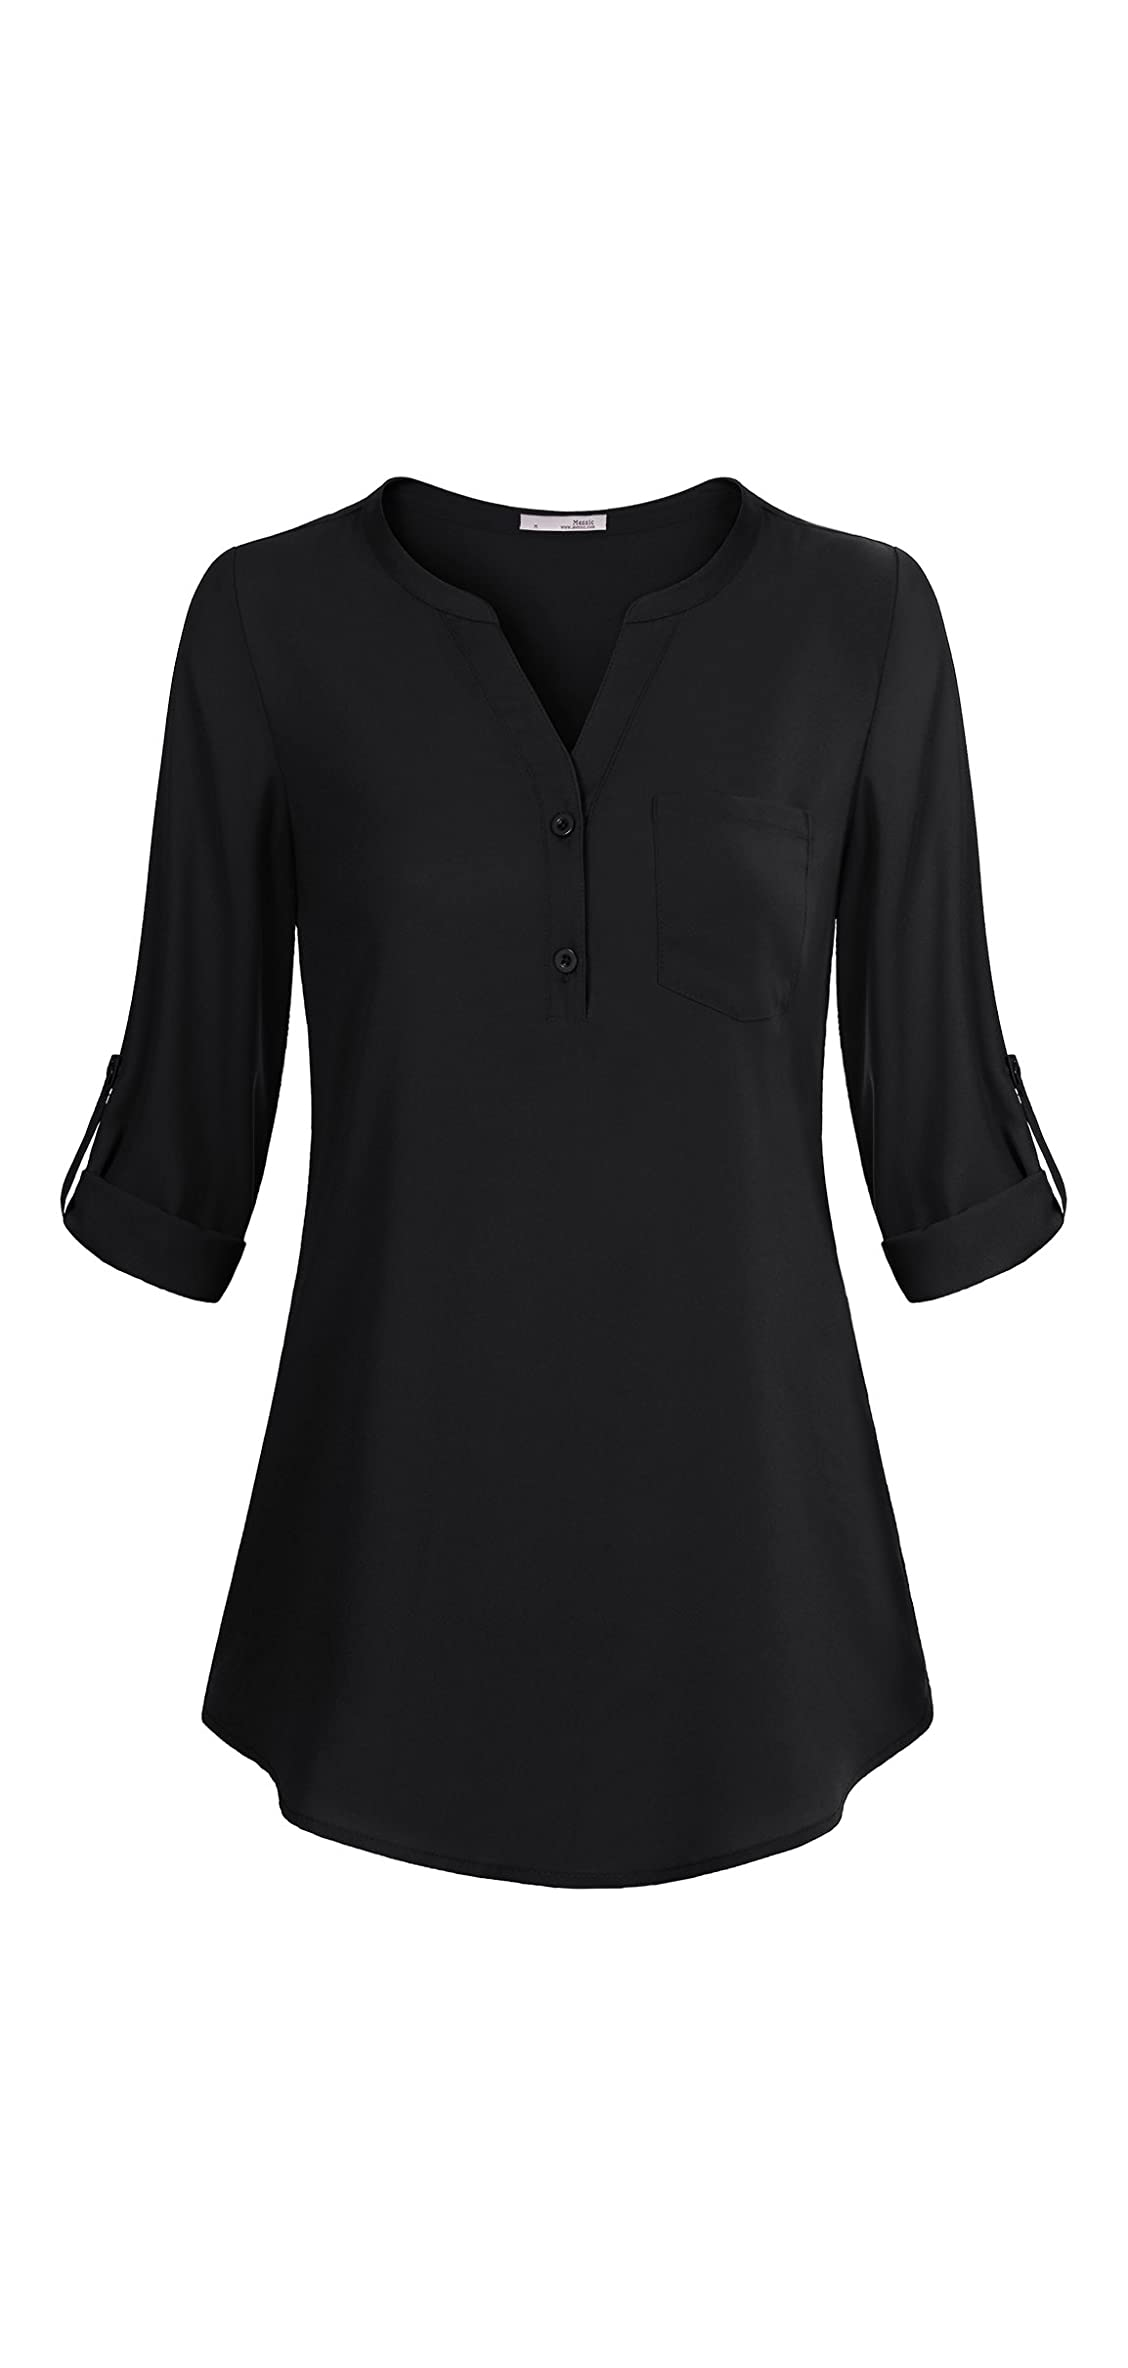 Women's V-neck Blouses / Roll-up Sleeve Button Casual